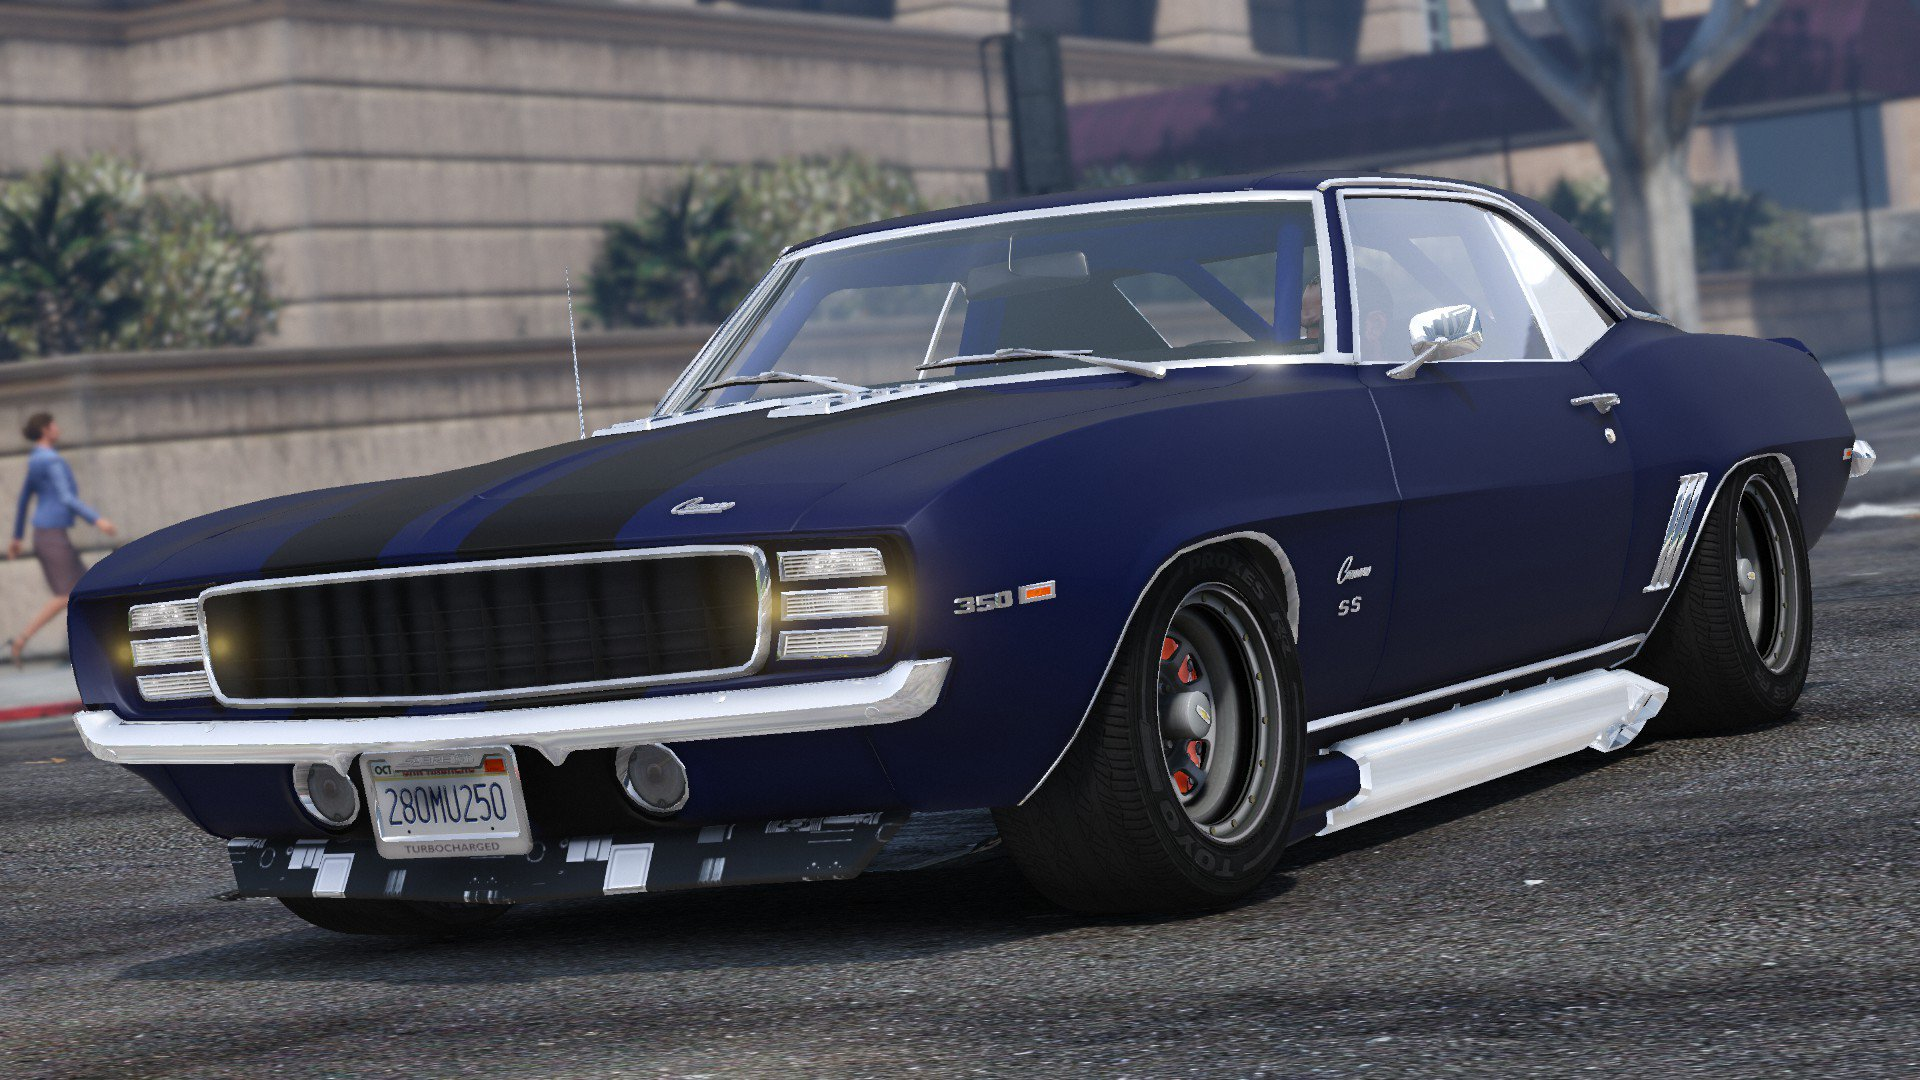 Chevrolet Ss 69 >> Chevrolet Camaro SS 1969 (Add-on) - Vehicules pour GTA V sur GTA Modding